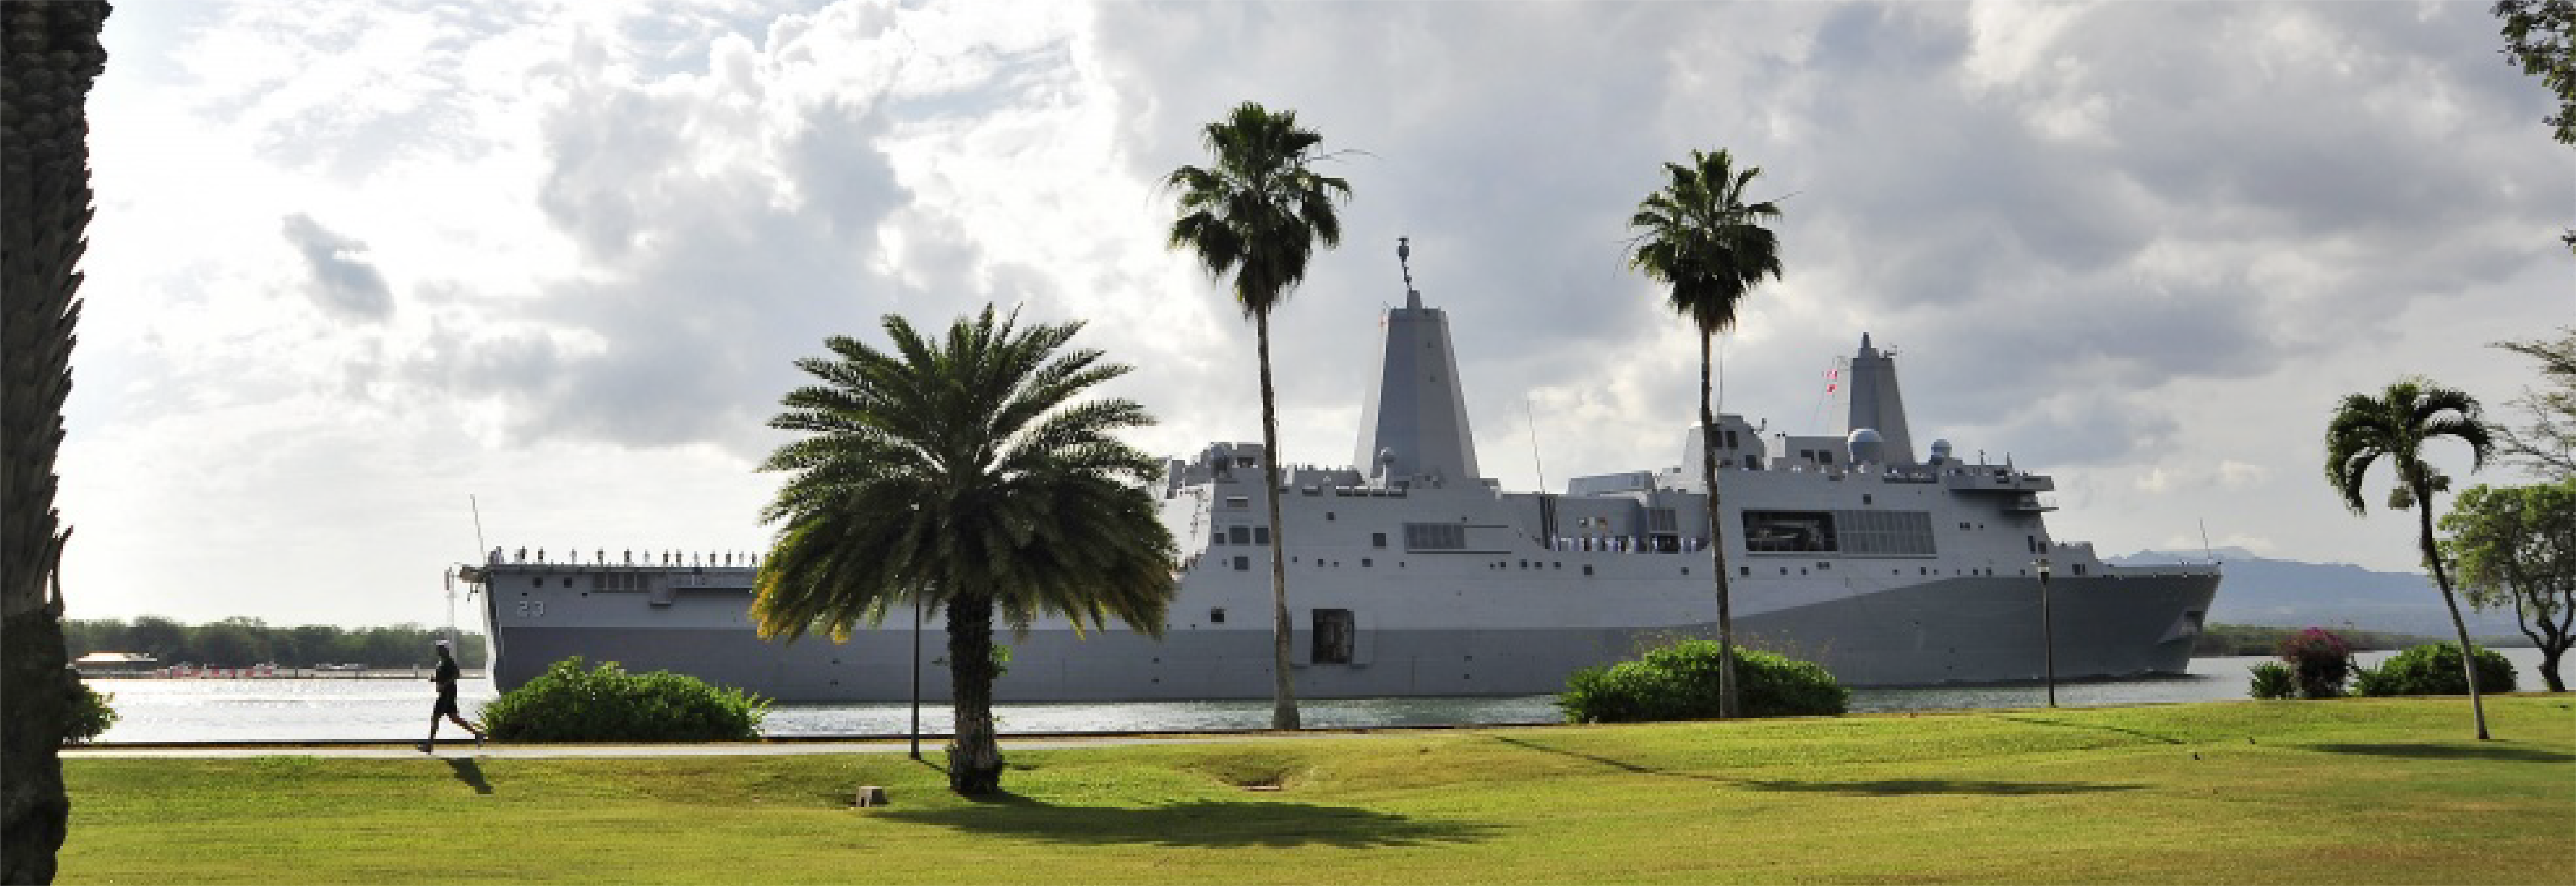 Joint Base Pearl Harbor-Hickam Weather in the Spring